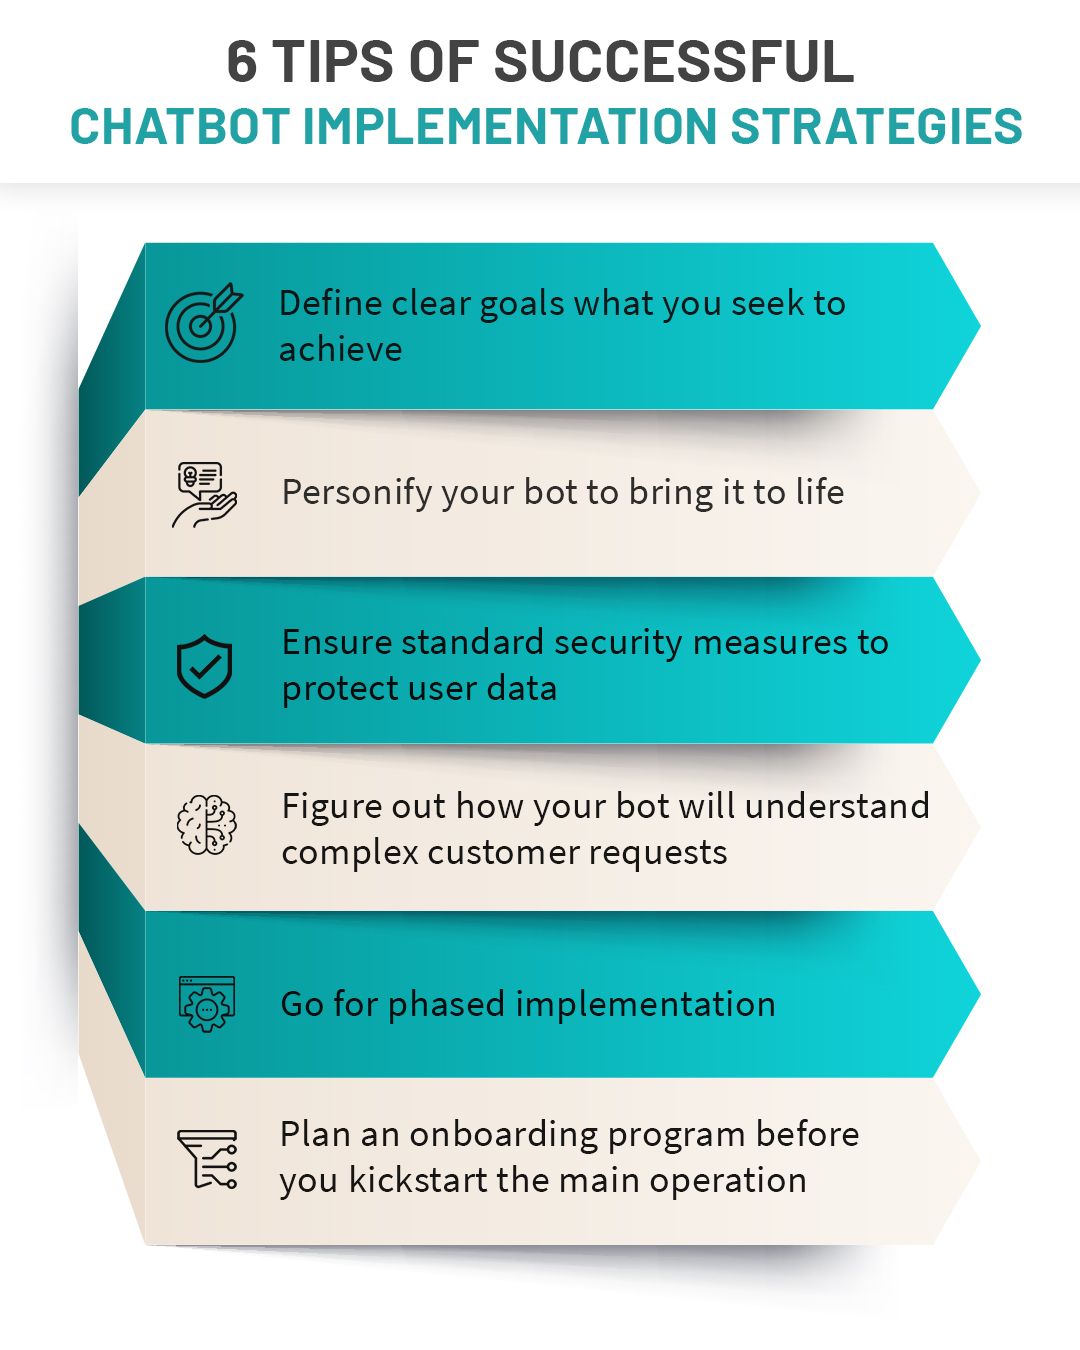 6 tips of successful conversational  chatbot implementation strategies